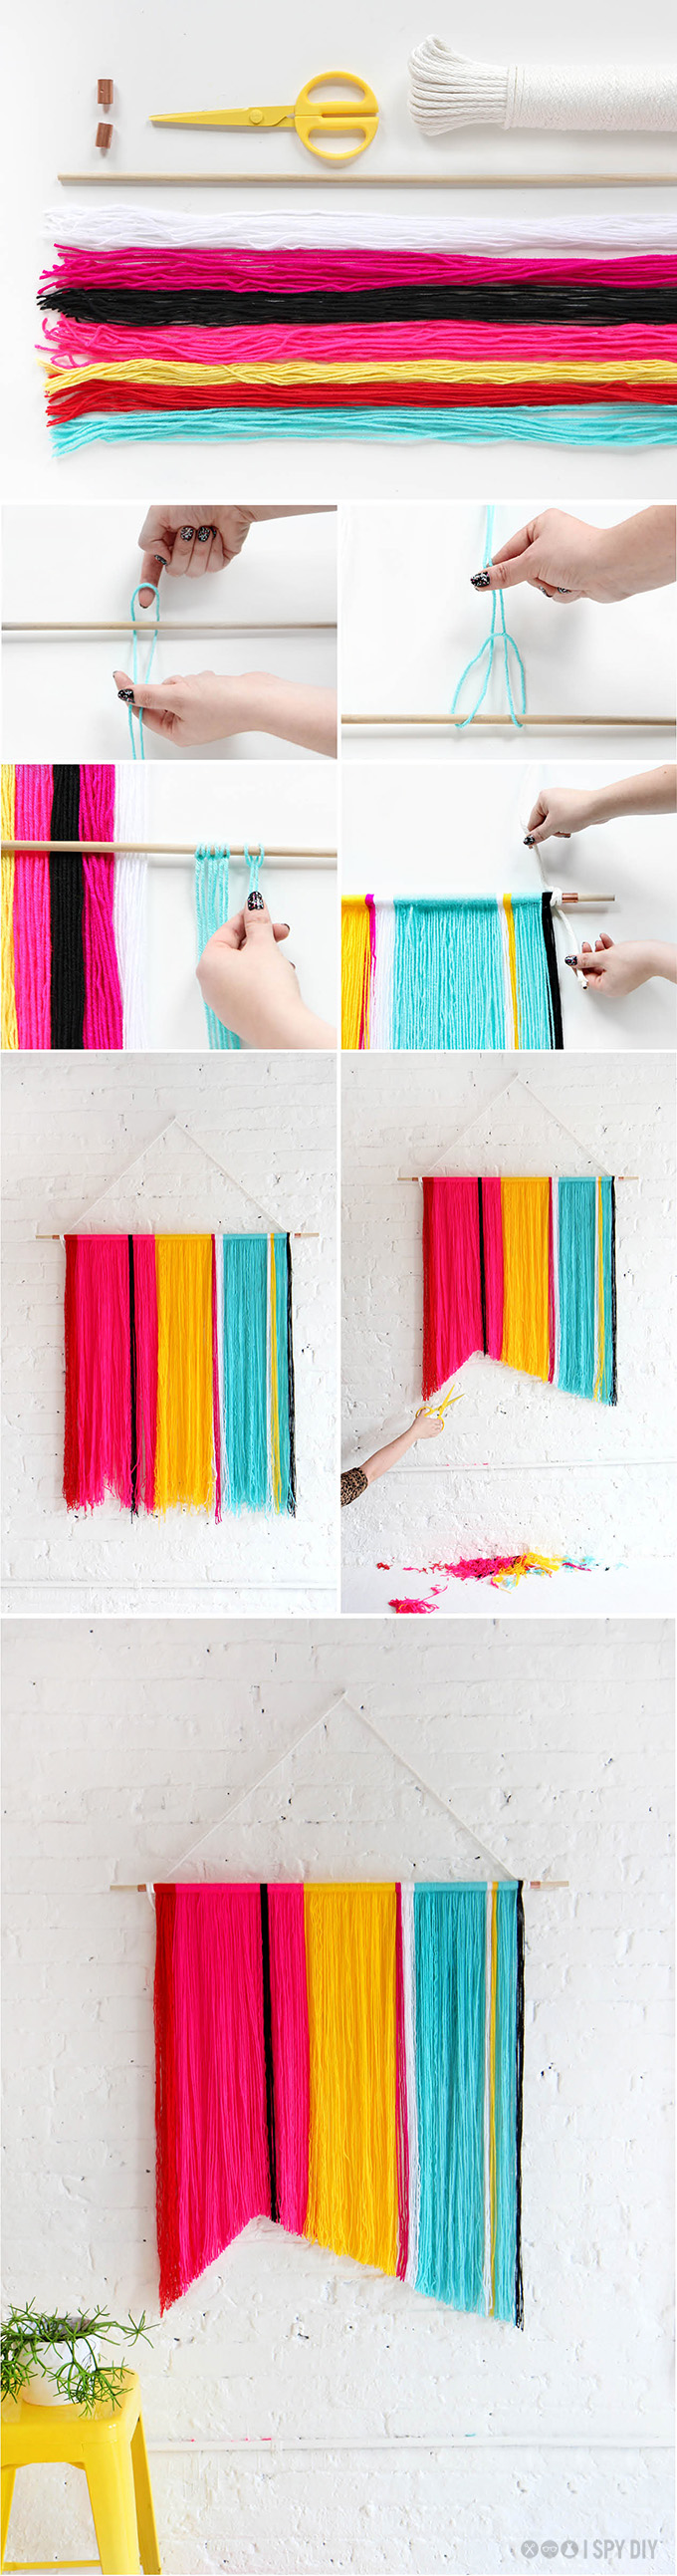 Ispydiy_wallhanging_steps